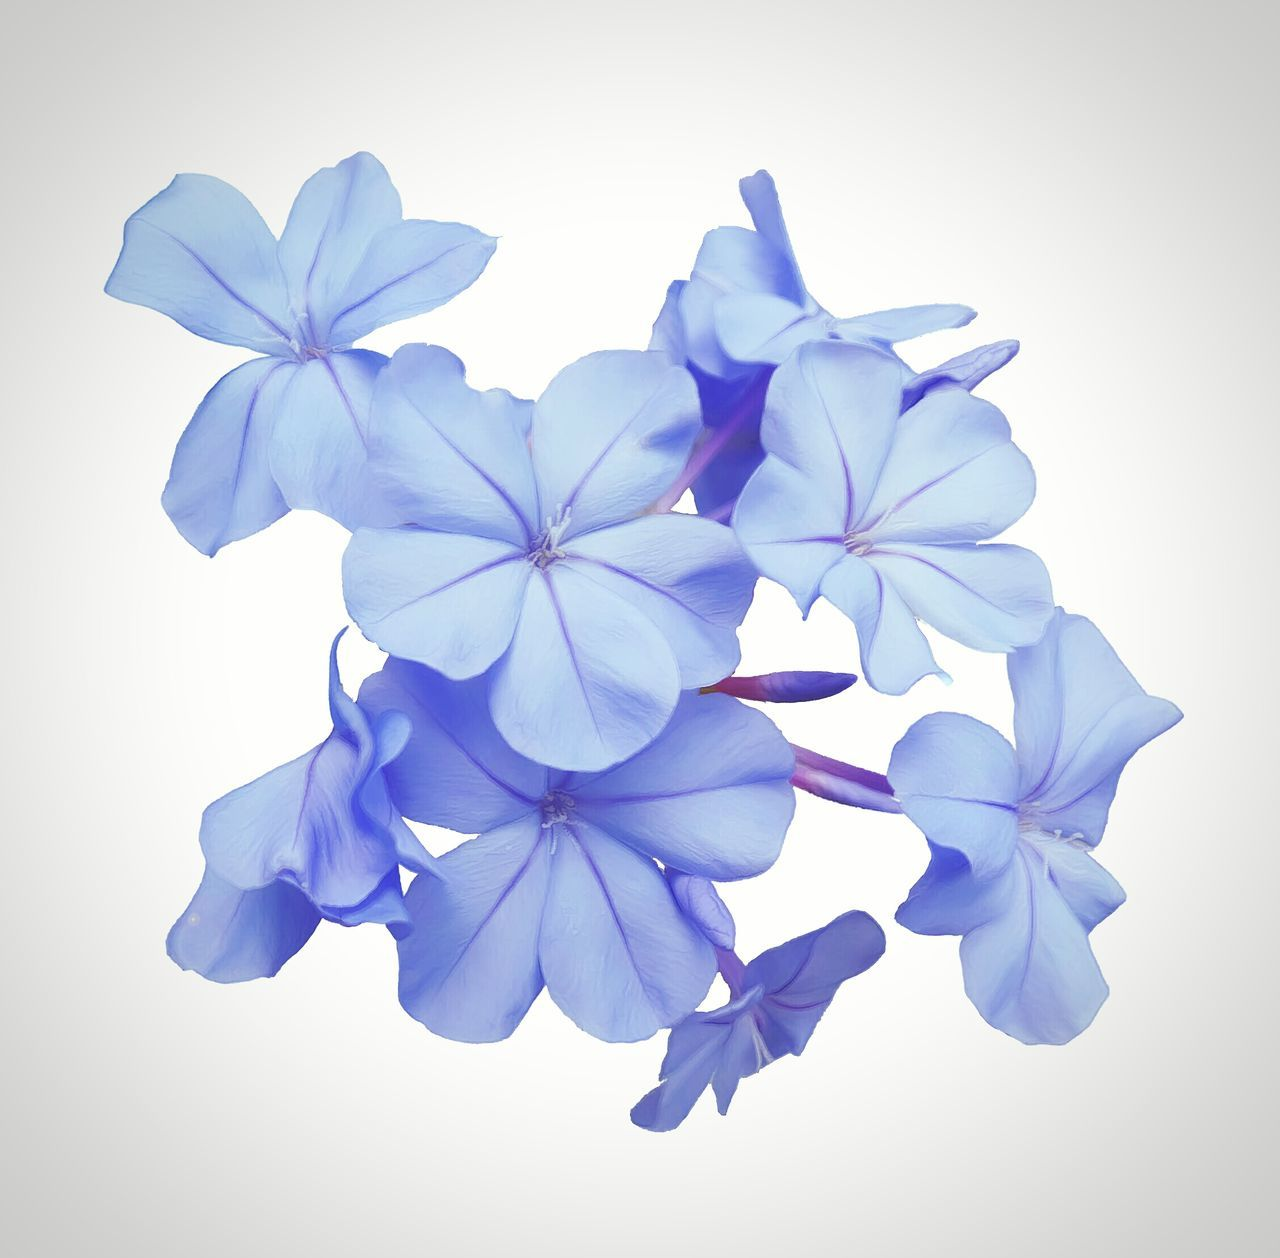 Flowers,Plants & Garden Botanical Flower Blue Plumbago Floral